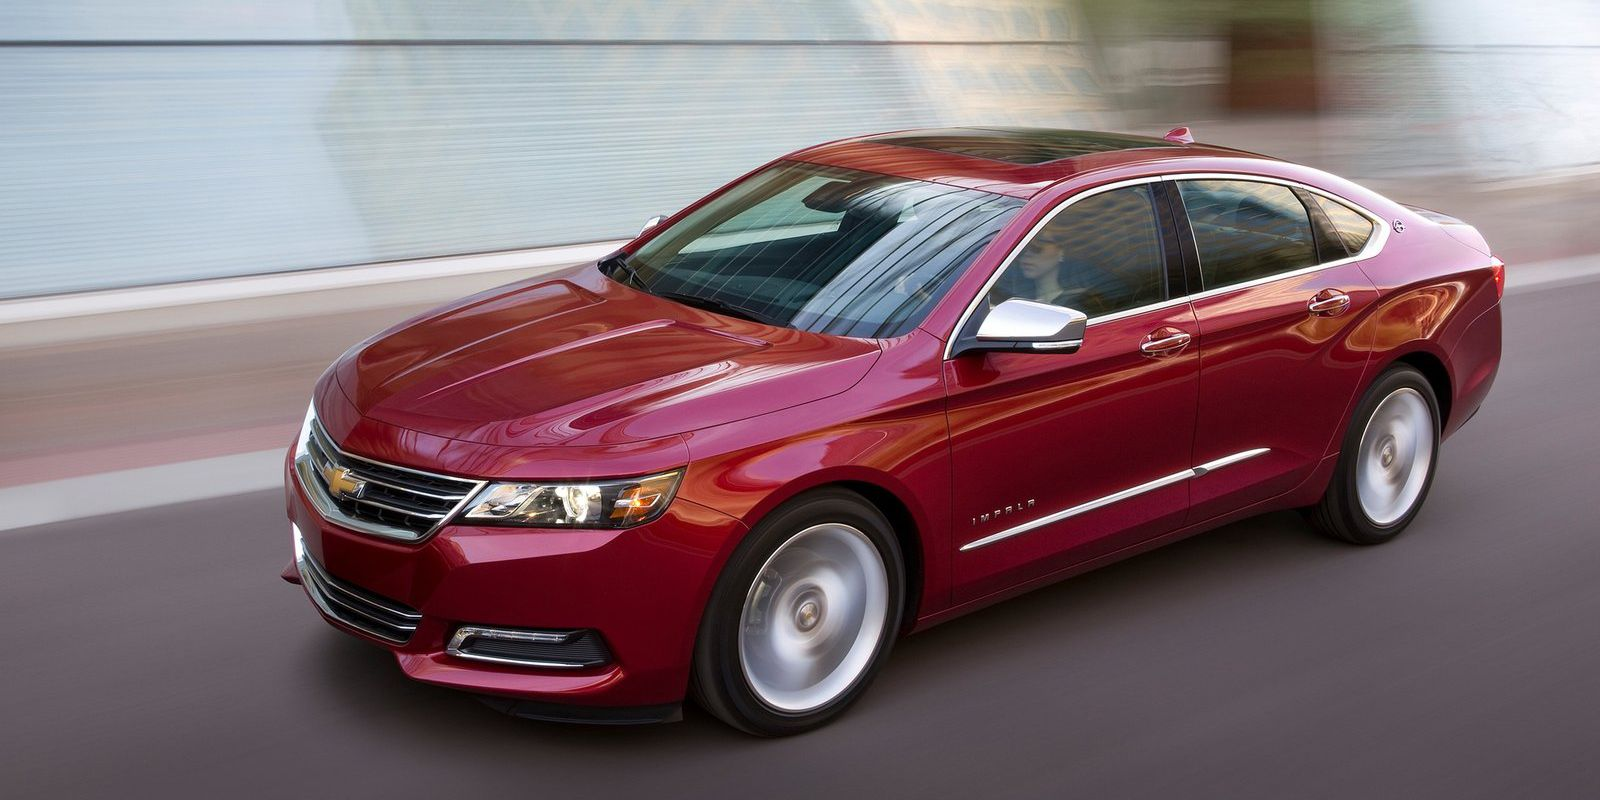 "<p>You mostly see Impalas parked in front of the Piccadilly or on I-95 making another run between Florida and New York, but despite the Impala's popularity with the elderly, don't be mistaken—the V6 version is quick. It will hit 60 mph <a href=""http://www.caranddriver.com/reviews/2014-chevrolet-impala-36l-v-6-instrumented-test-reviews"" target=""_blank"">nearly a half second faster</a> than the Mustang. Maybe that's why Grandpa loves his new Impala so much.</p>"